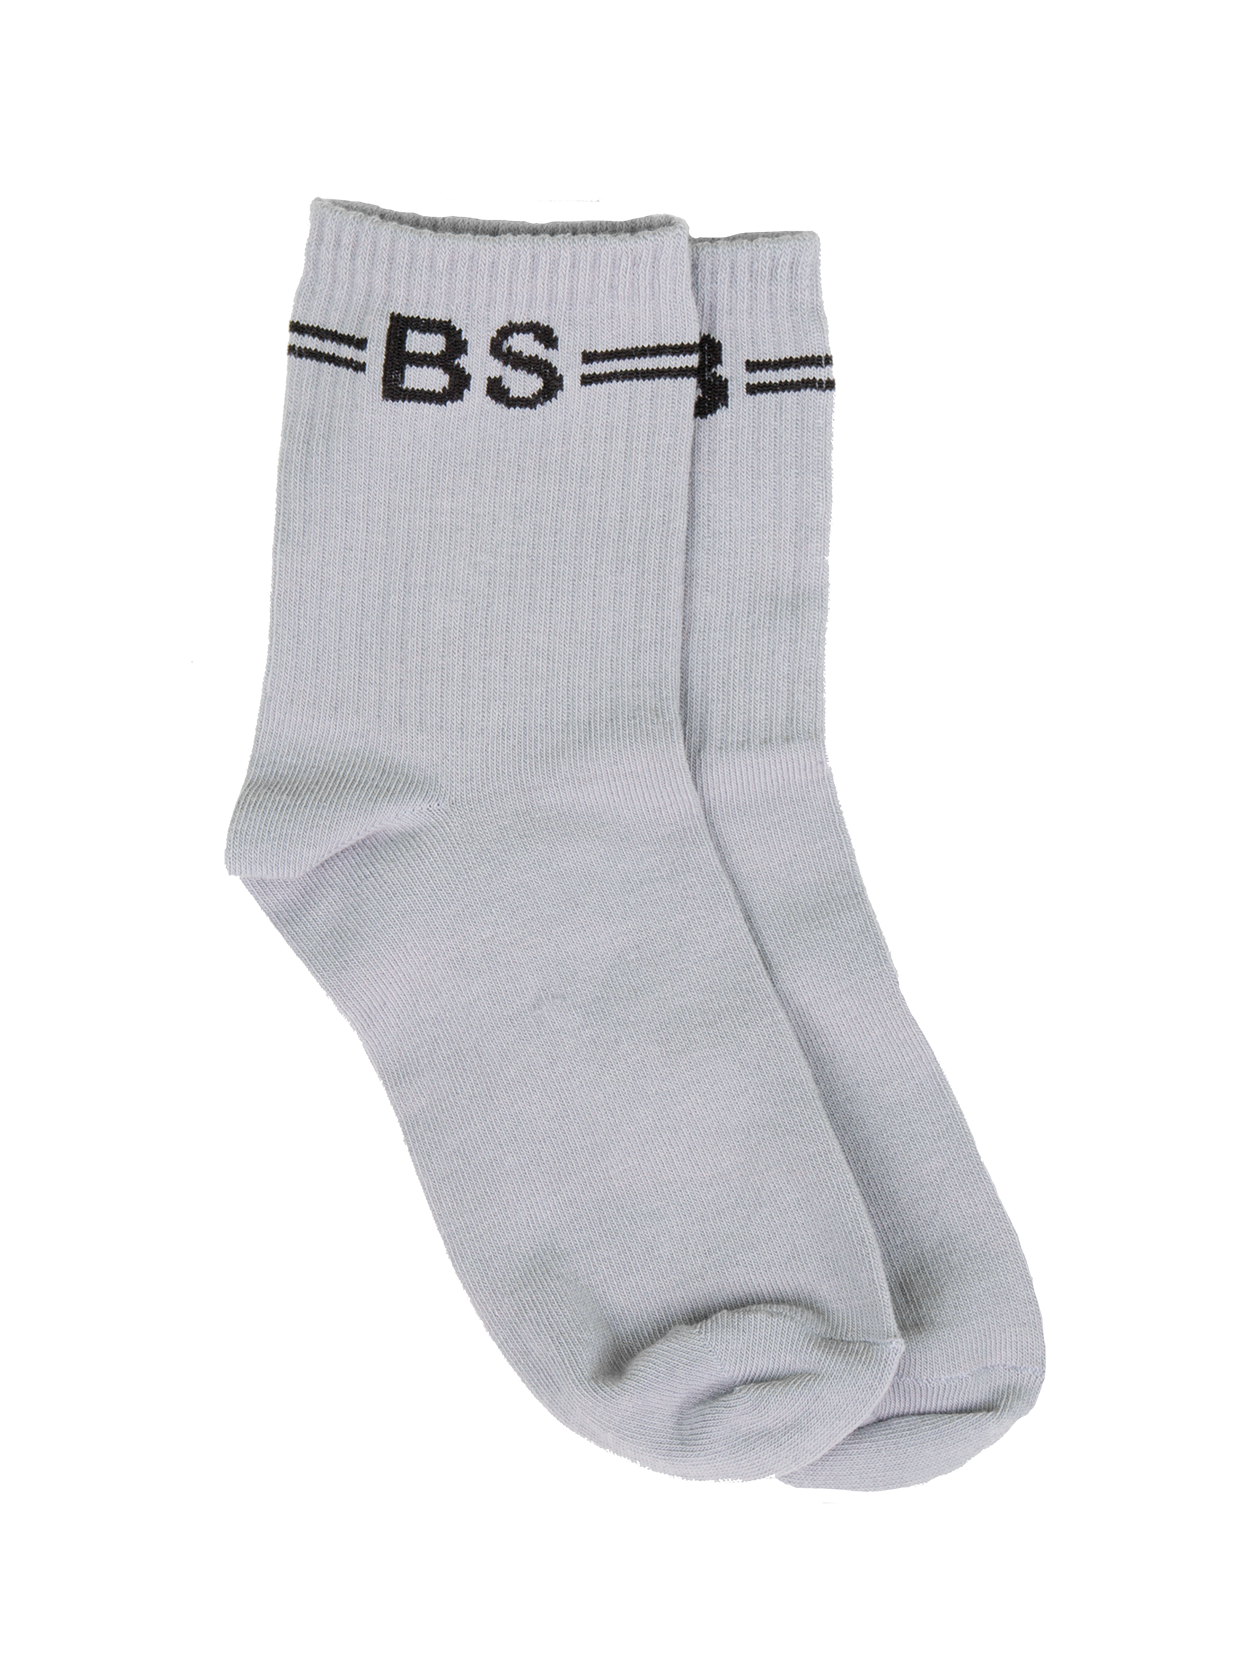 Unisex Socks BS 13 ClassicUnisex socks by Black Star Wear. These cotton blend socks grant you an ultimate comfort during your all day or sport activities. Decorated with a BS 13 emroidery on the top. Avaliable in white, gray and black.<br><br>size: 39/40<br>color: Grey<br>gender: unisex